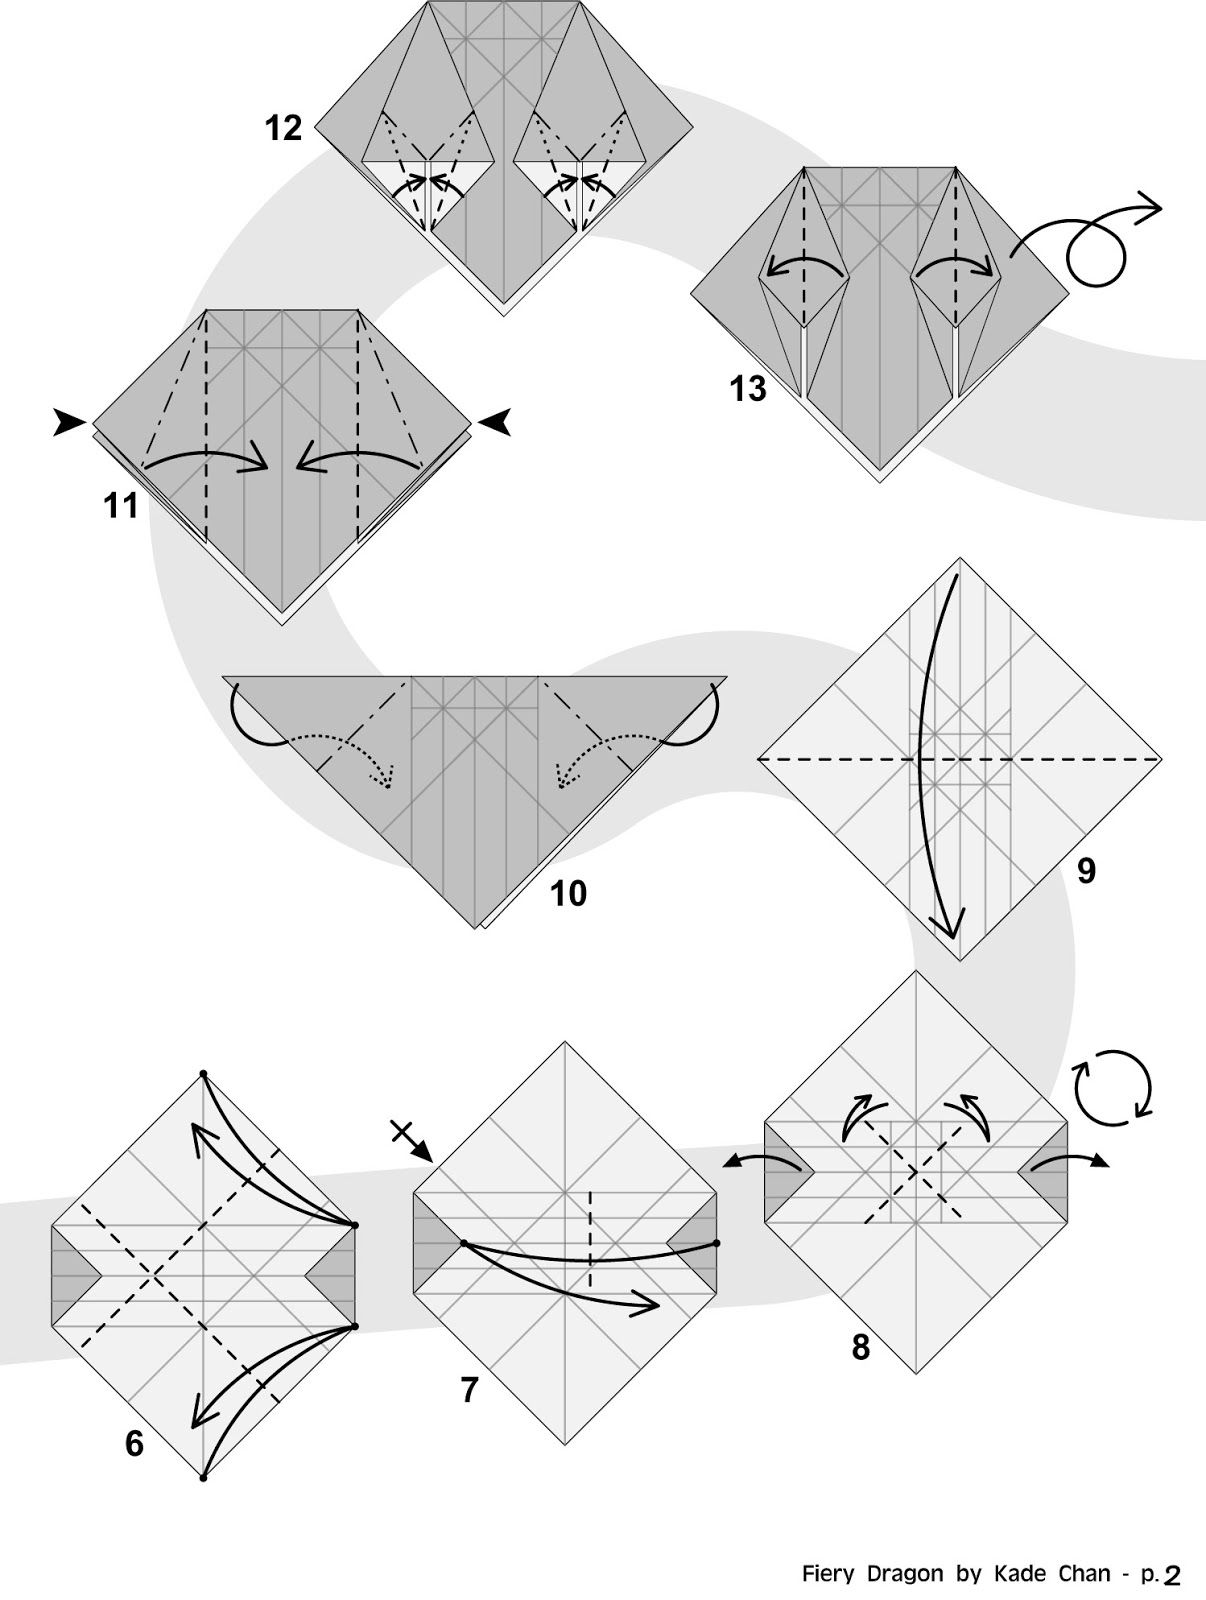 1000 images about origami on pinterest dragon origami cat and  : origami darkness dragon diagram - findchart.co